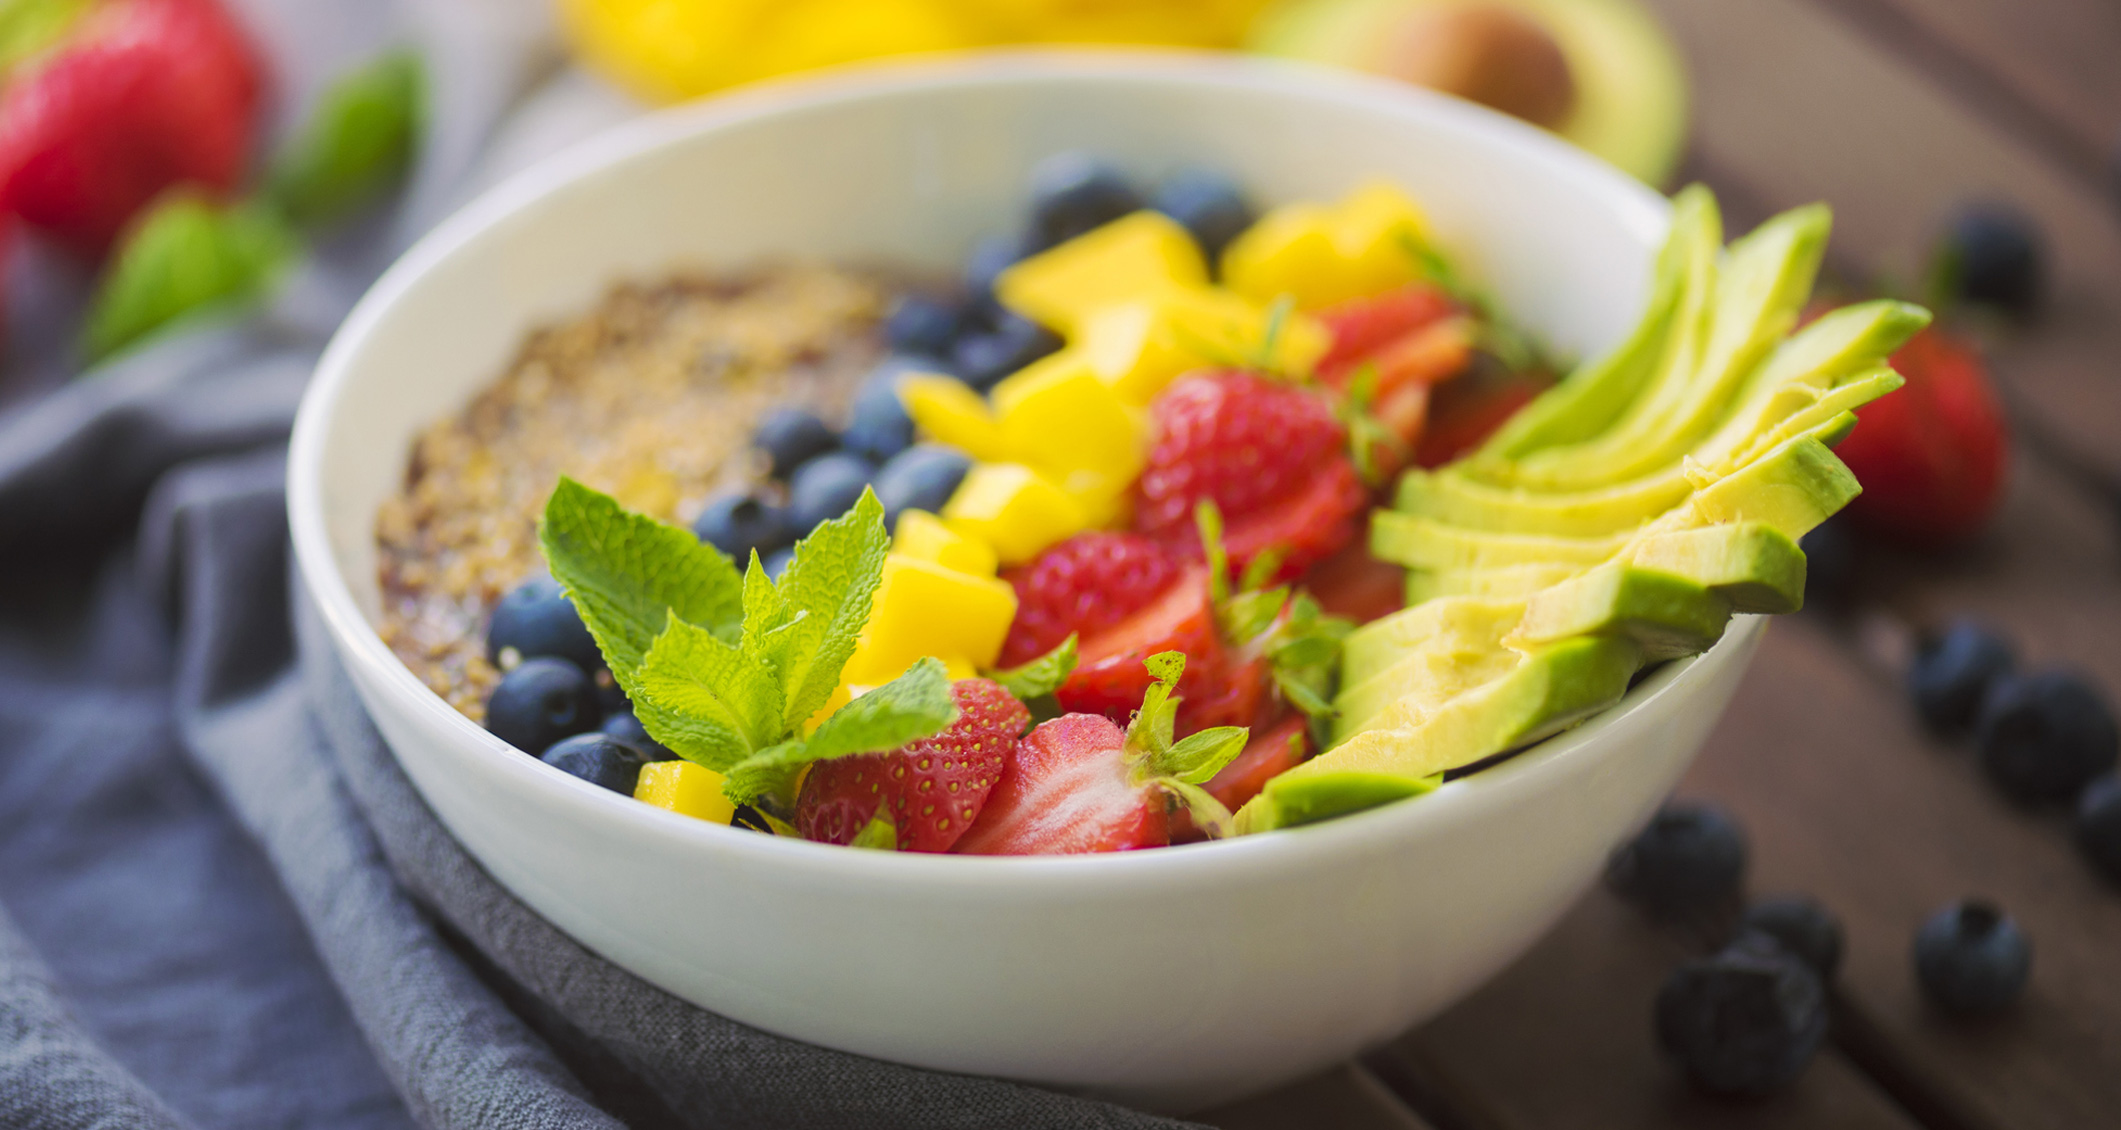 A bowl of colorful plant-based foods